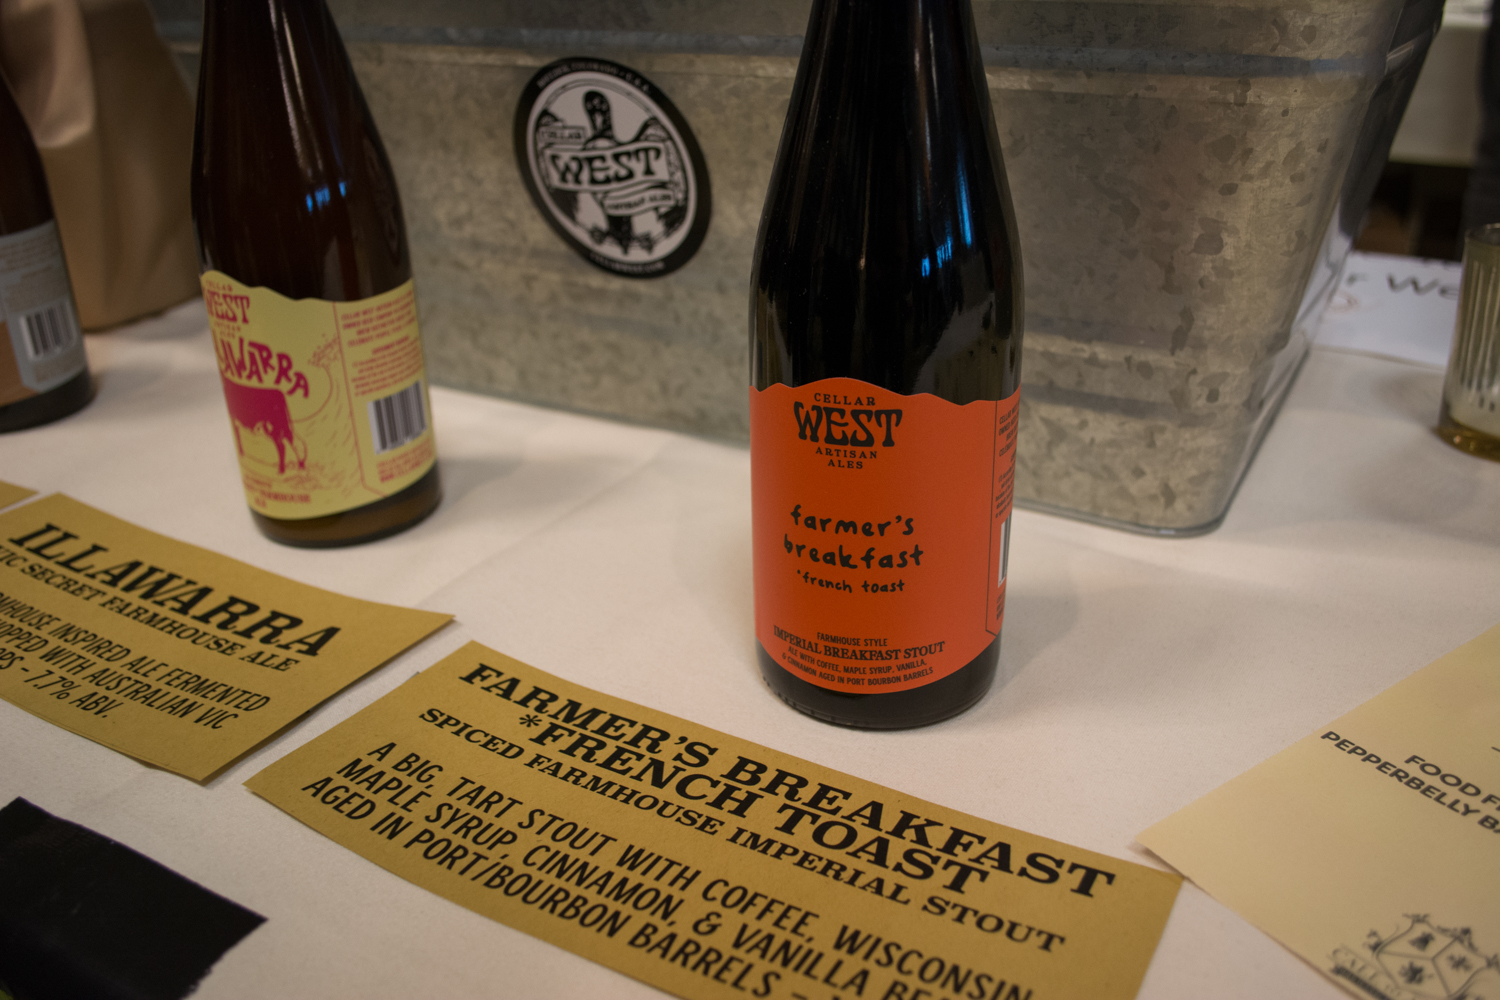 Pastry stouts were the name of the game at Big Beers 2018. Cellar West Artisanal Ales featured a fully loaded breakfast stout.